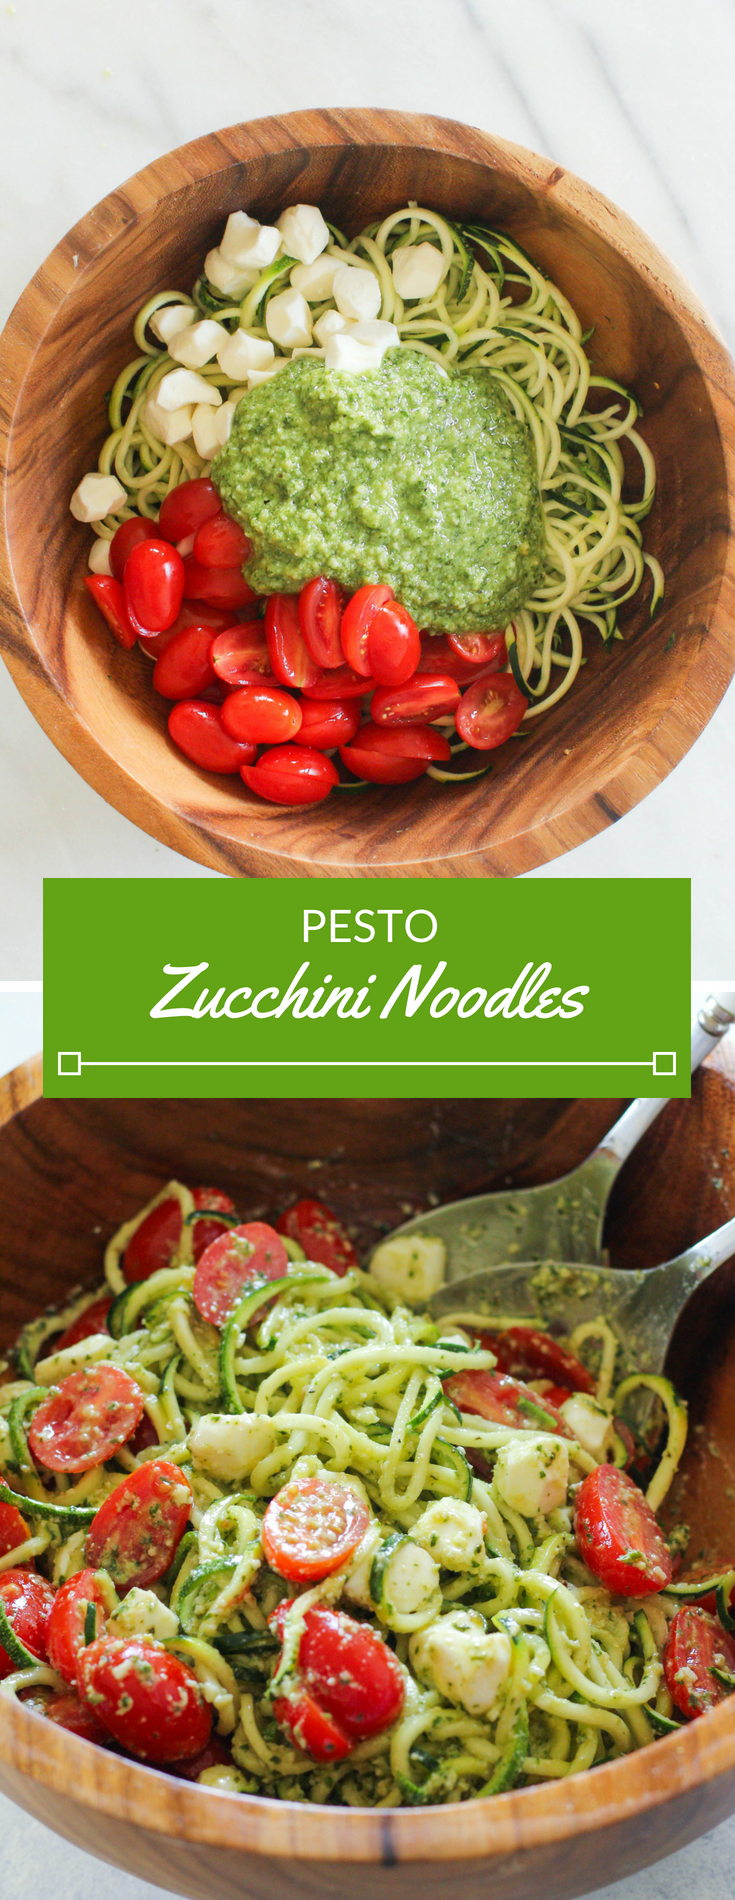 These Pesto Zucchini Noodles are a light and summery dish that doesn't require a stove top or ove